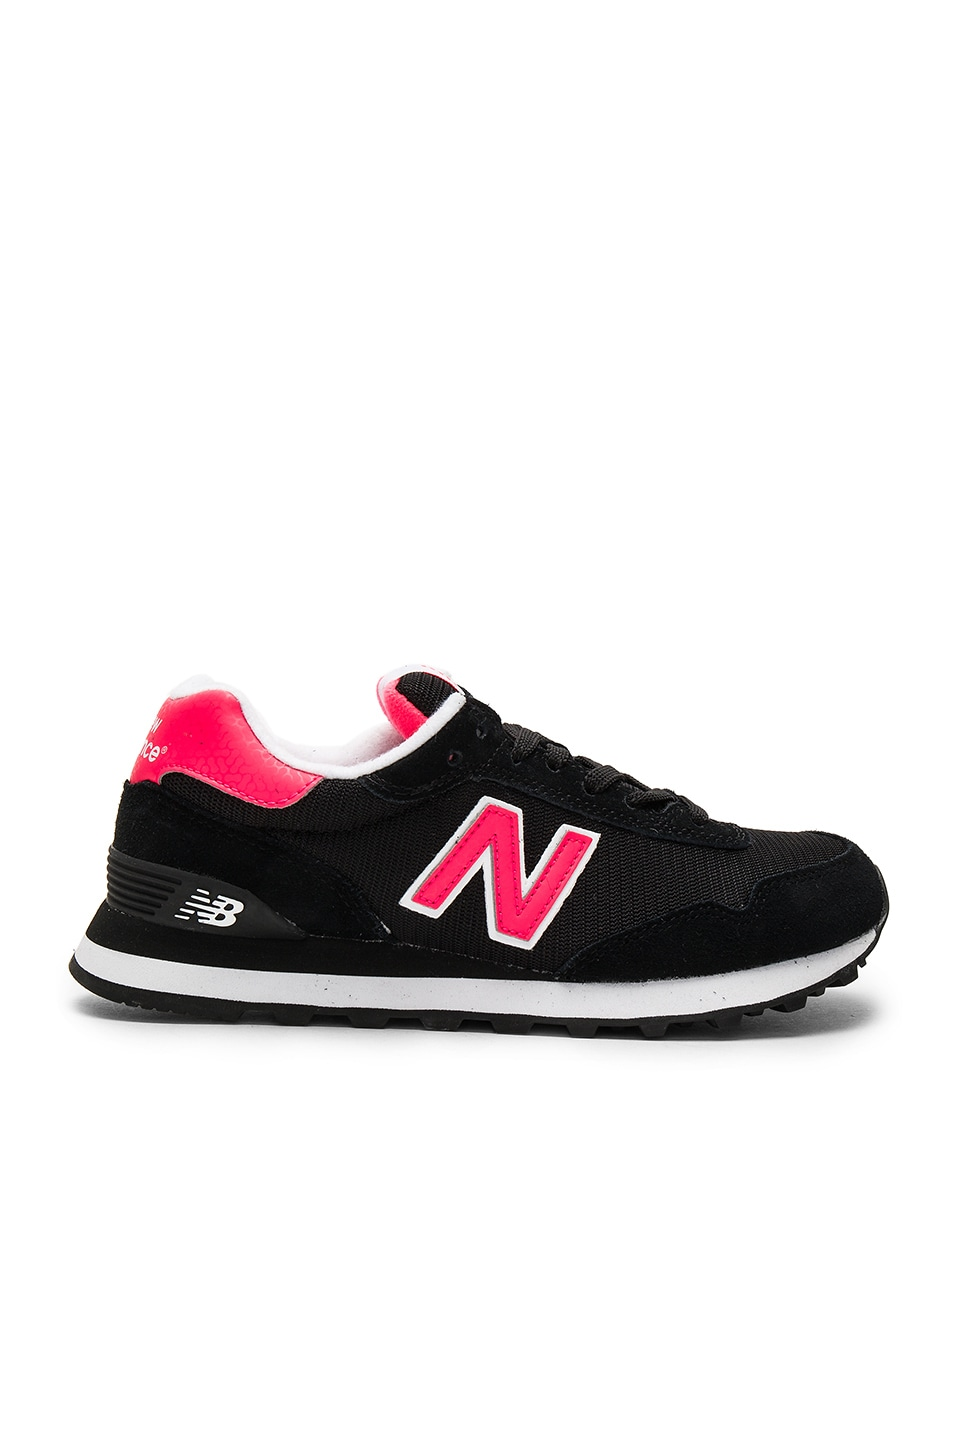 515 Sneaker by New Balance